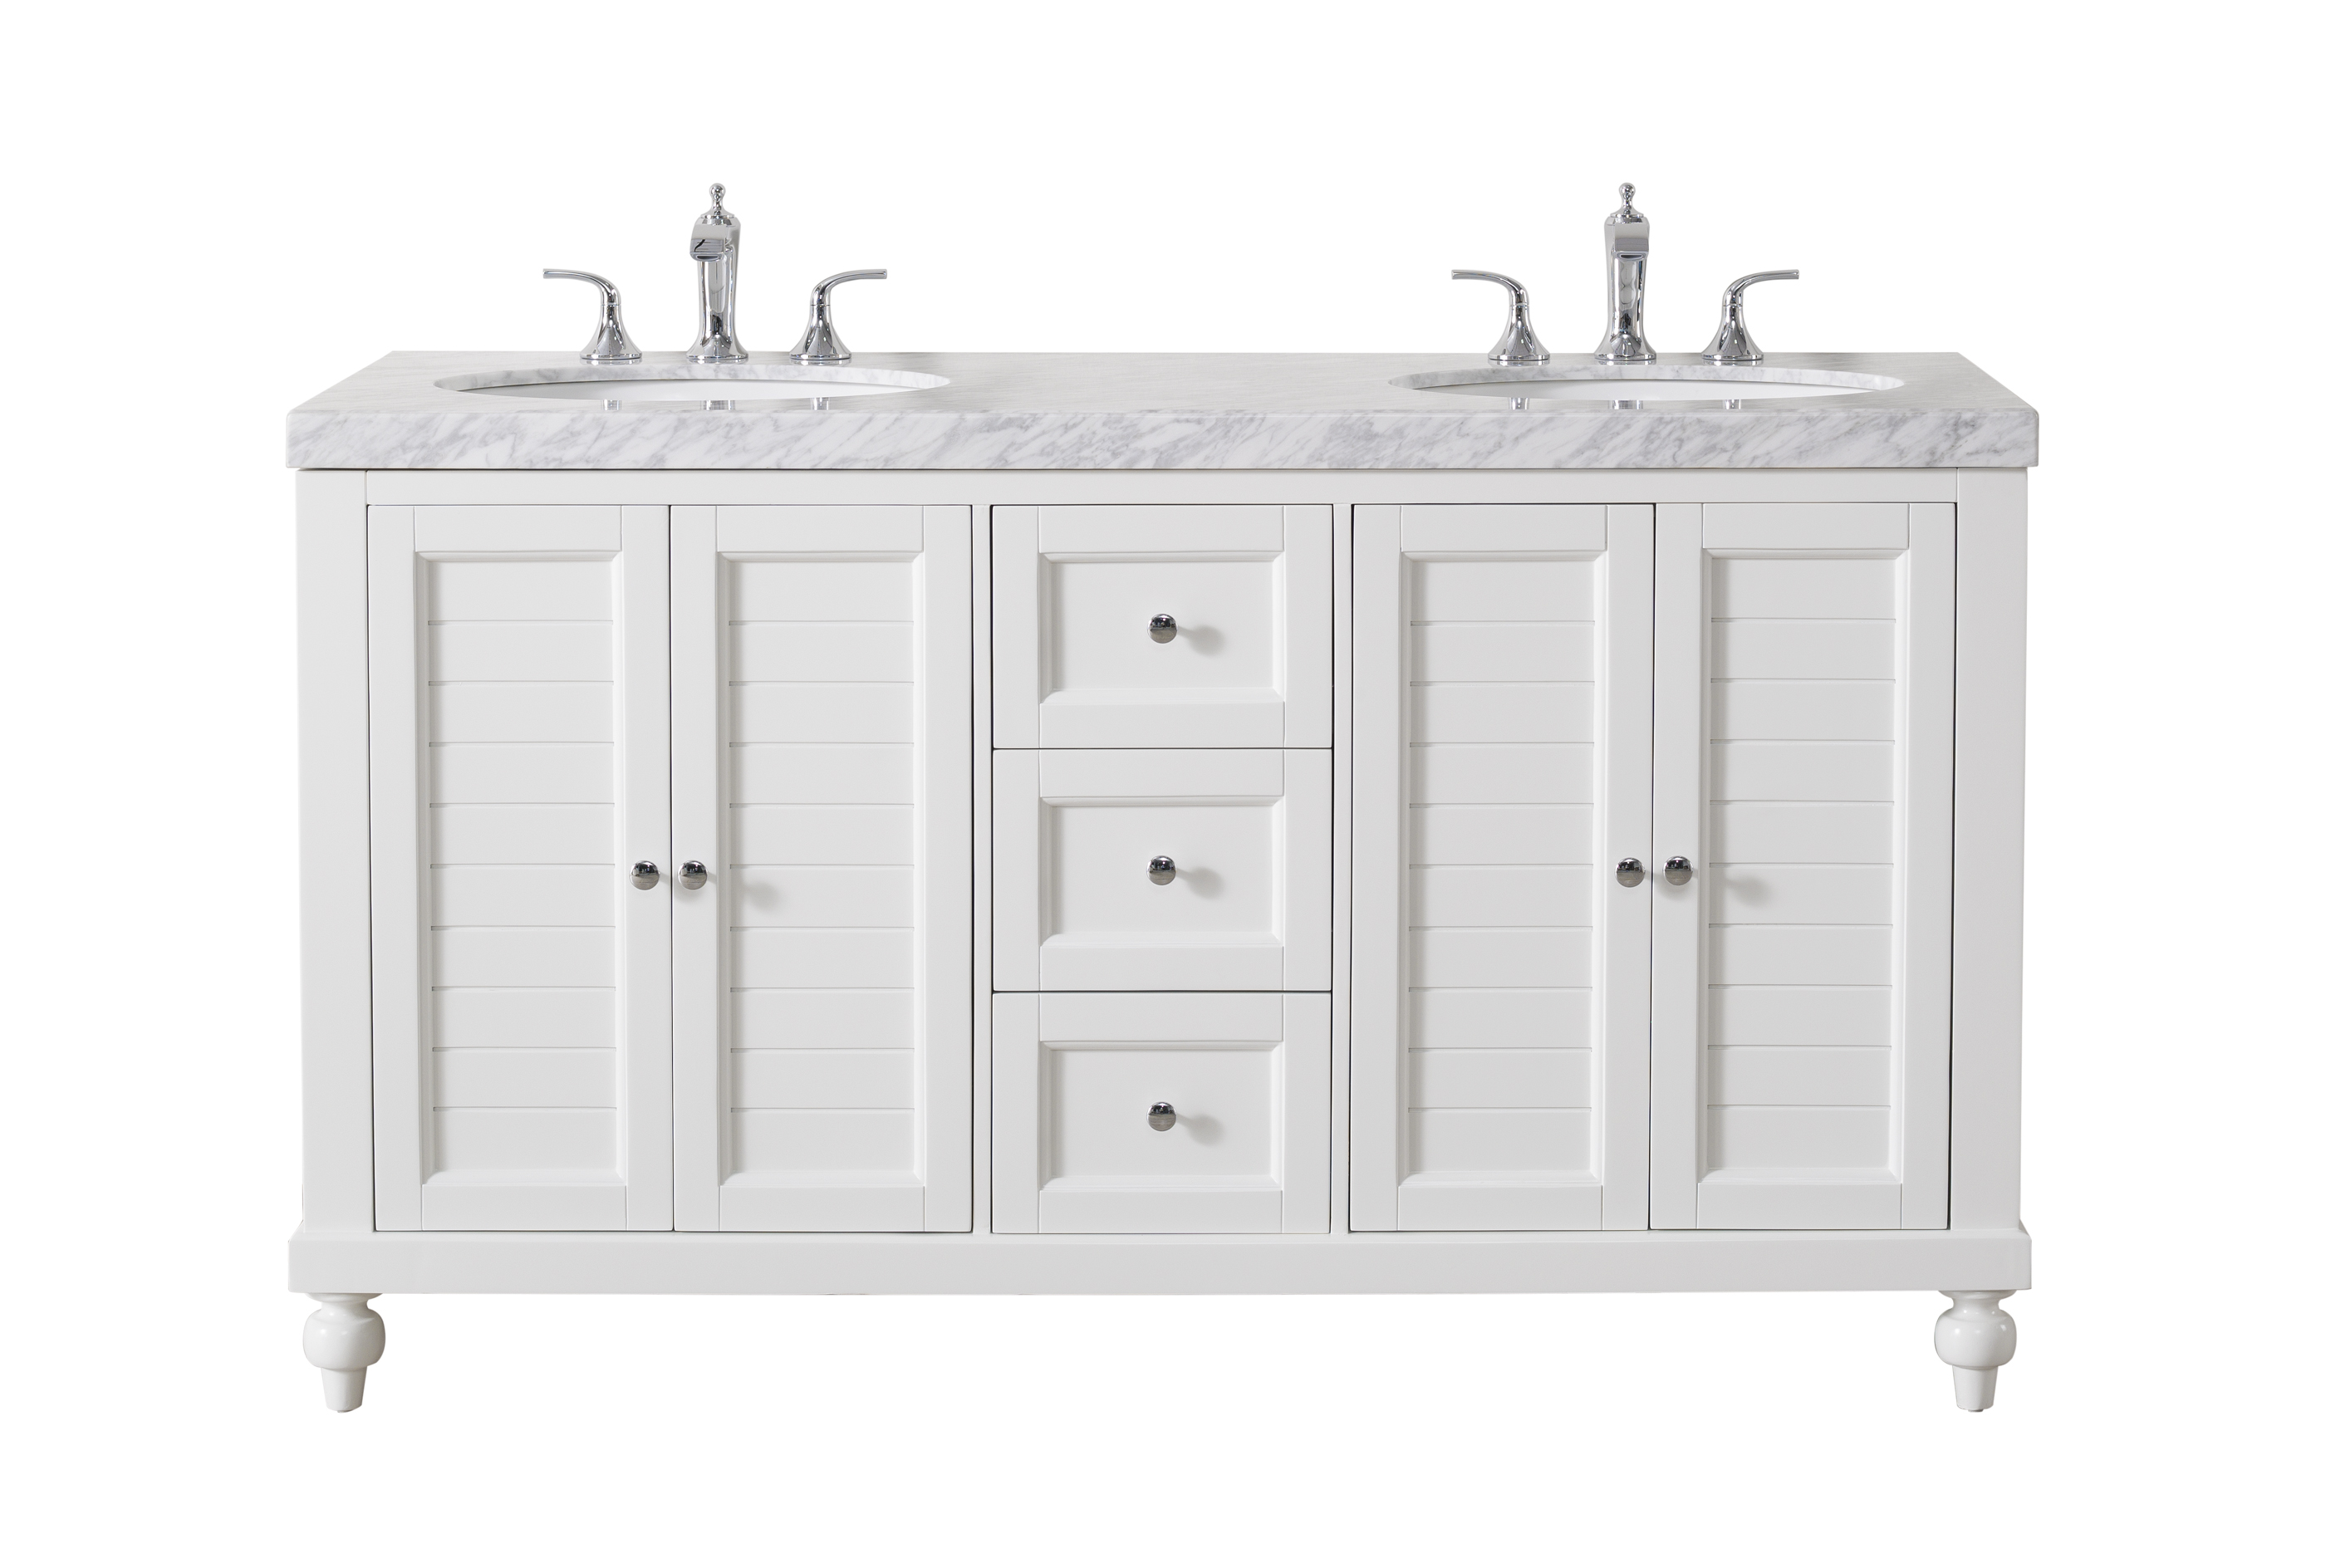 Stufurhome Kent 60 Inch White Double Sink Bathroom Vanity With Drains And Faucets In Chrome Walmart Com Walmart Com